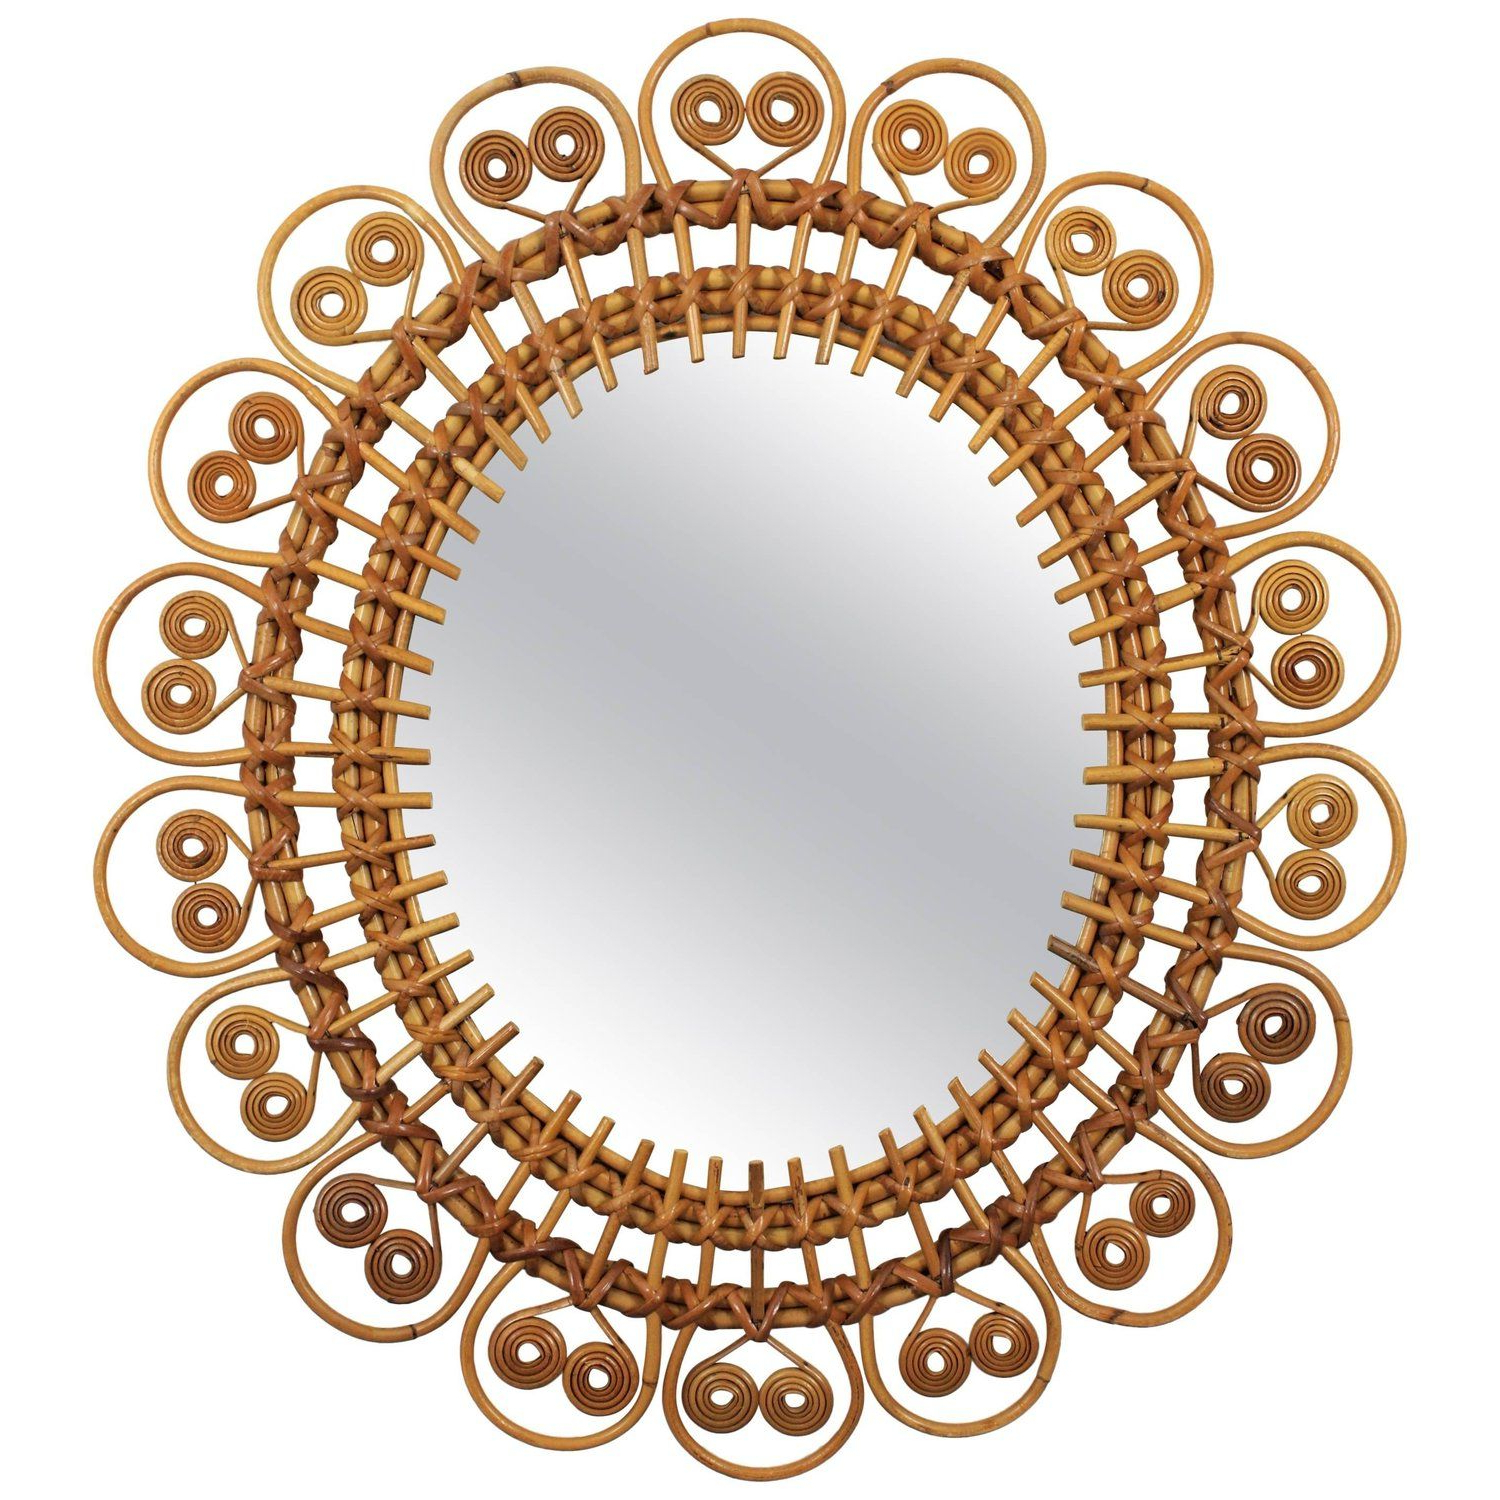 Newest Spit Curl Oval Shaped Rattan Wall Sunburst Mirror, France Regarding Oval Shaped Wall Mirrors (Gallery 8 of 20)